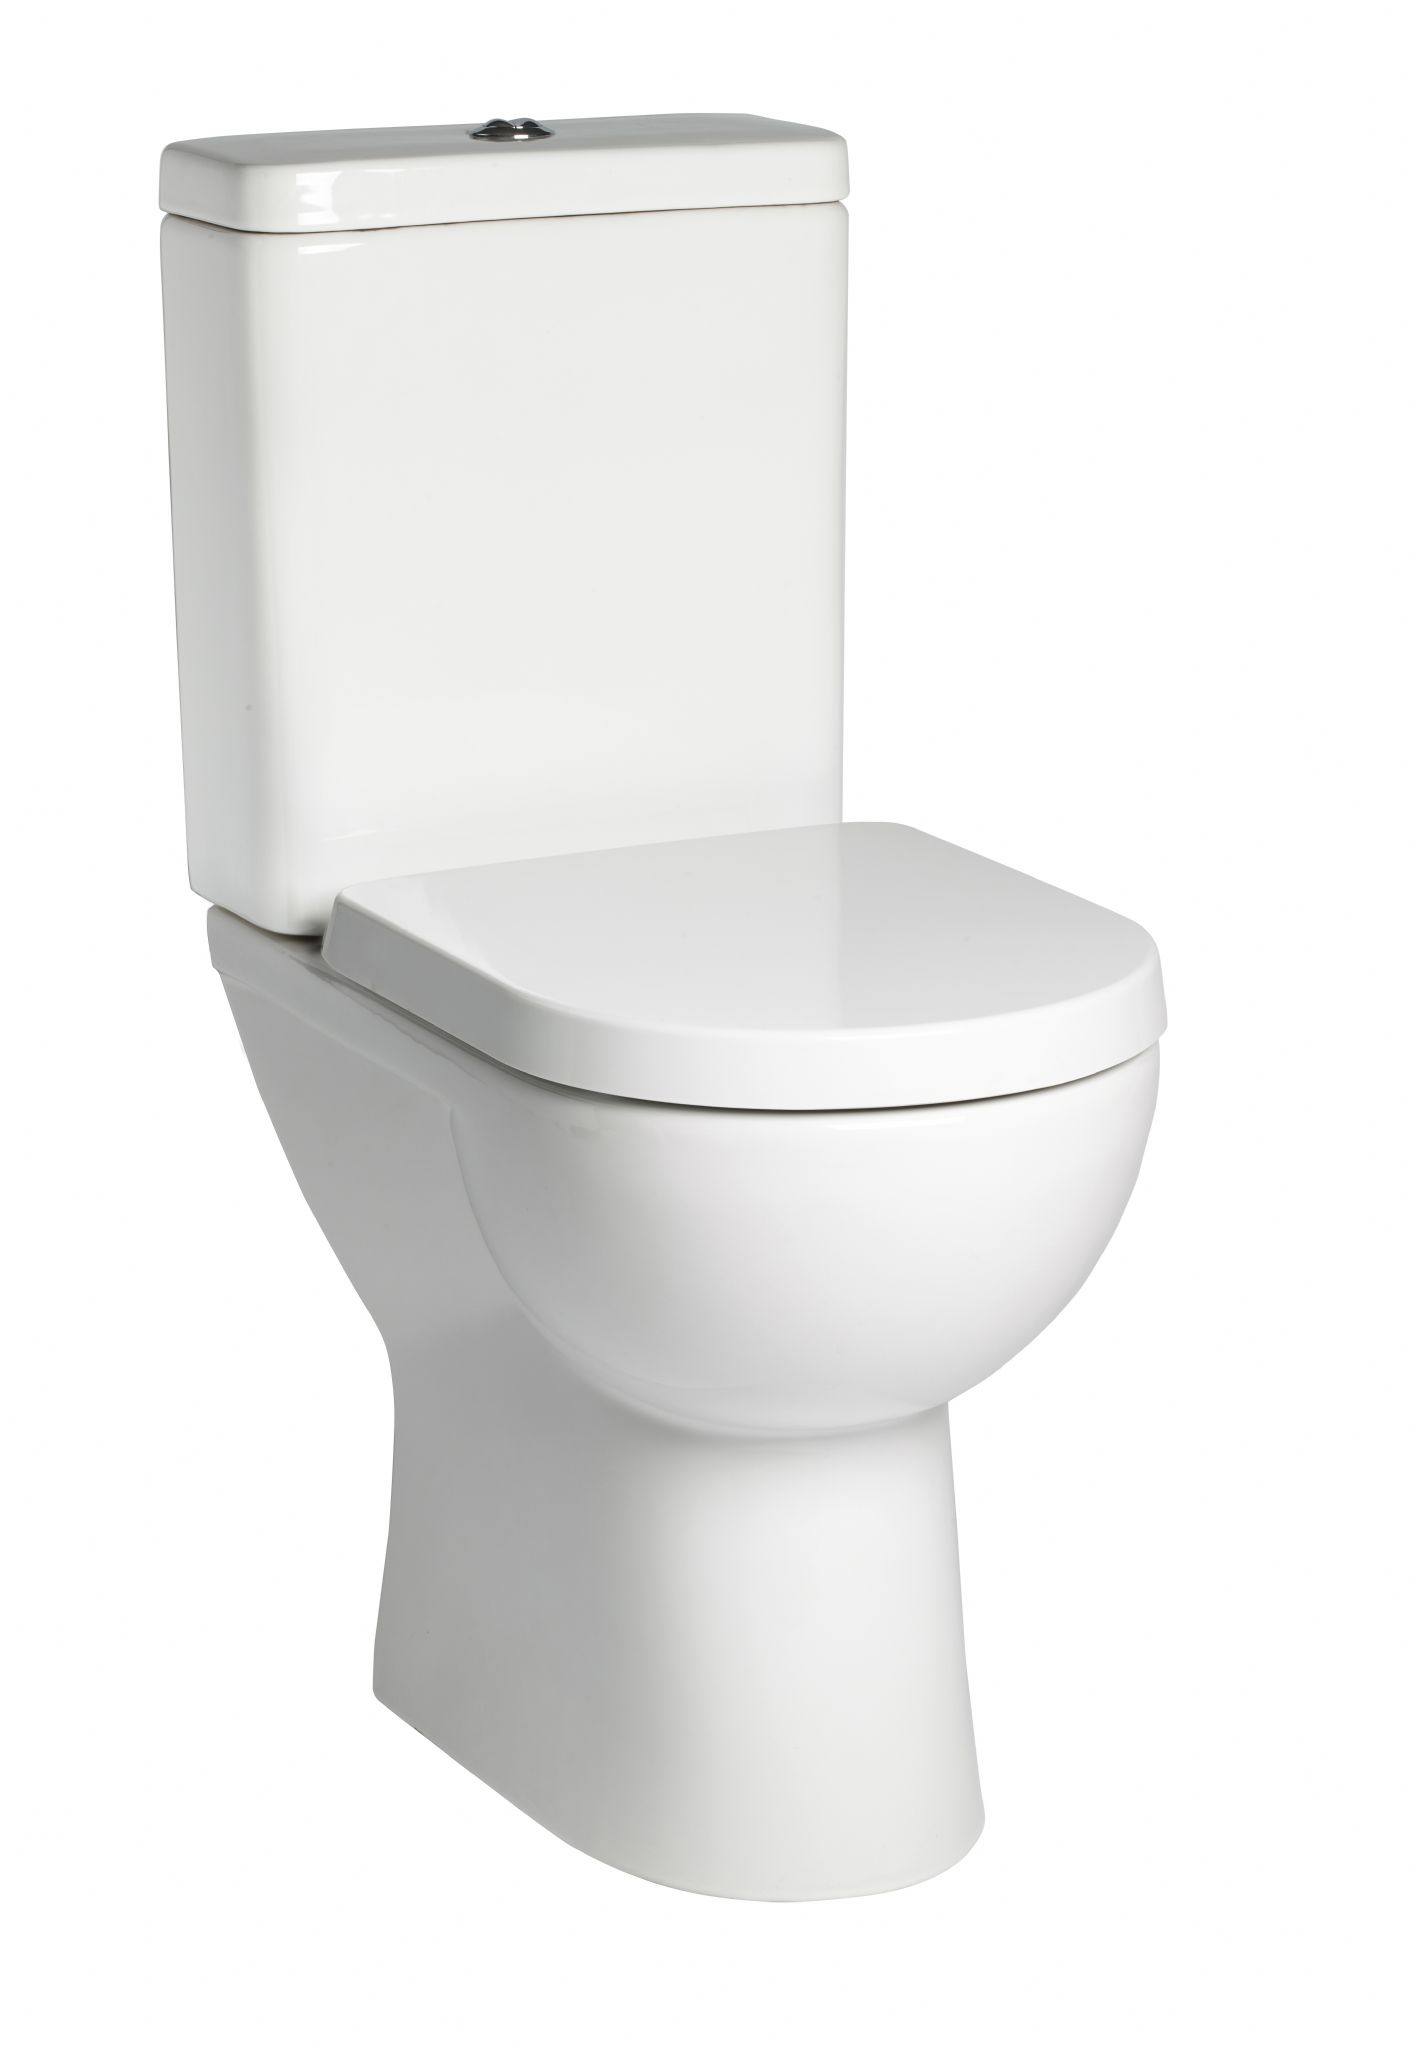 Wc stands for bathroom